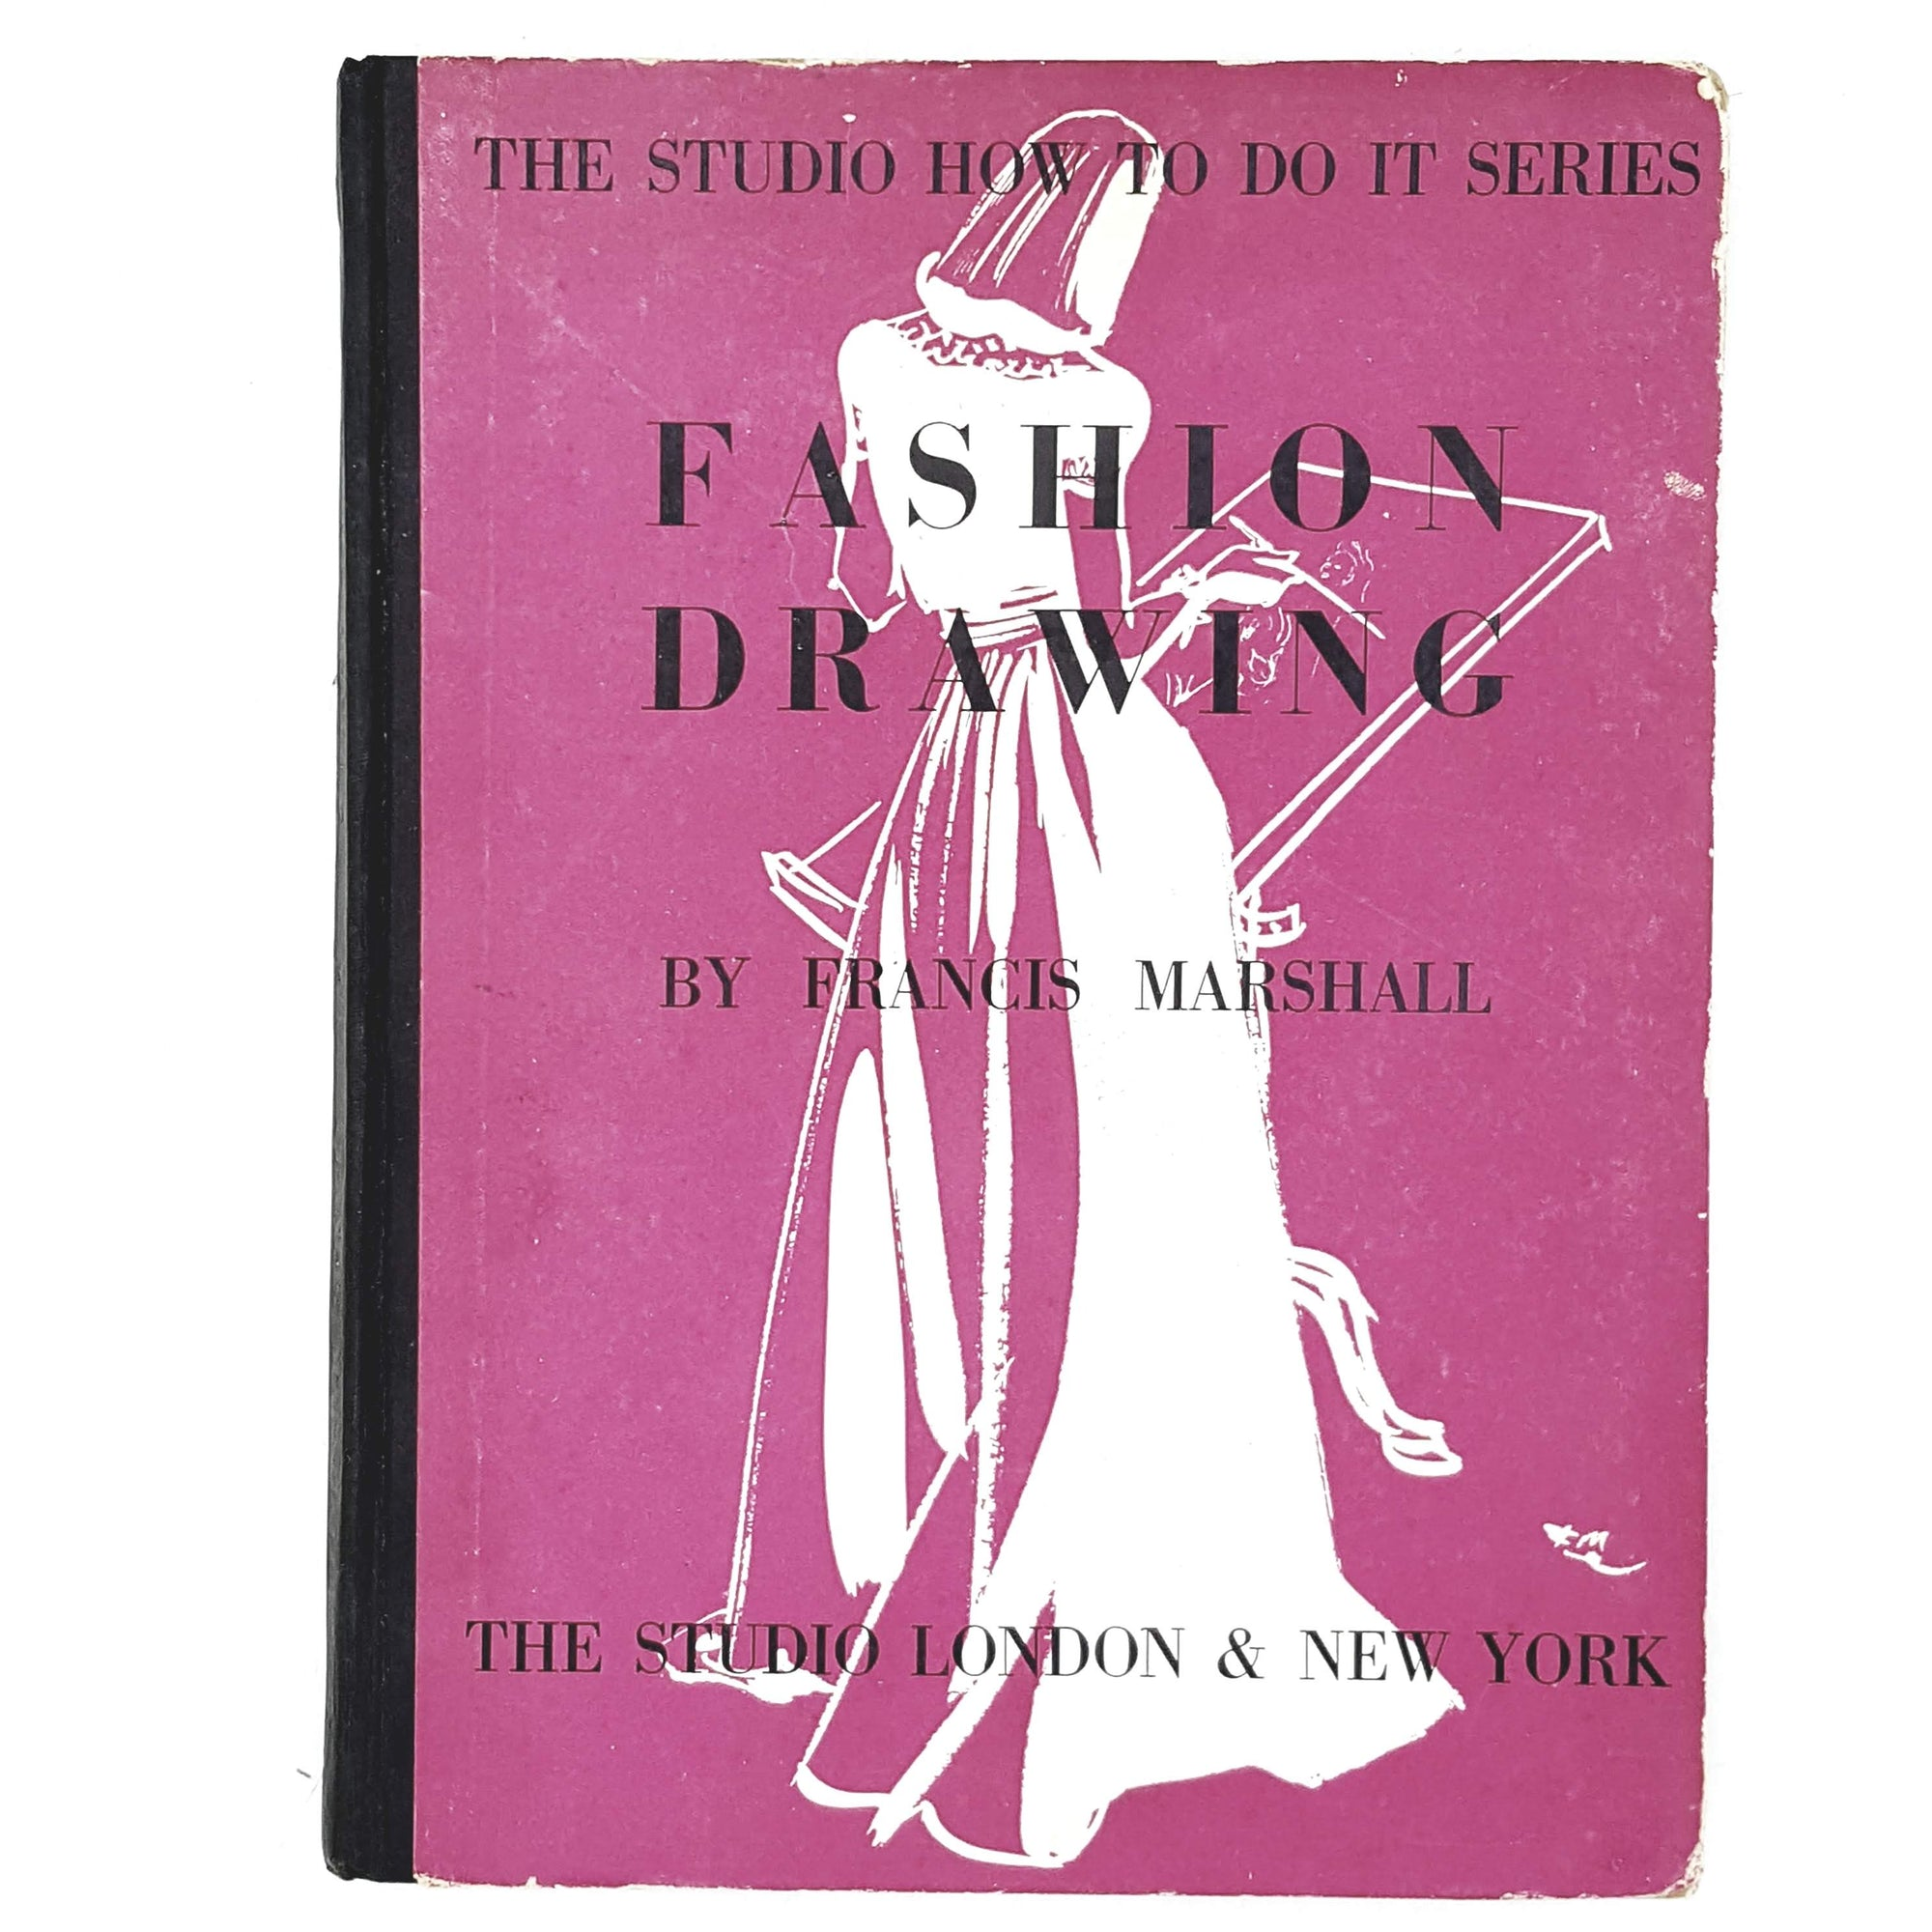 Vintage Fashion Drawing by Francis Marshall 1943